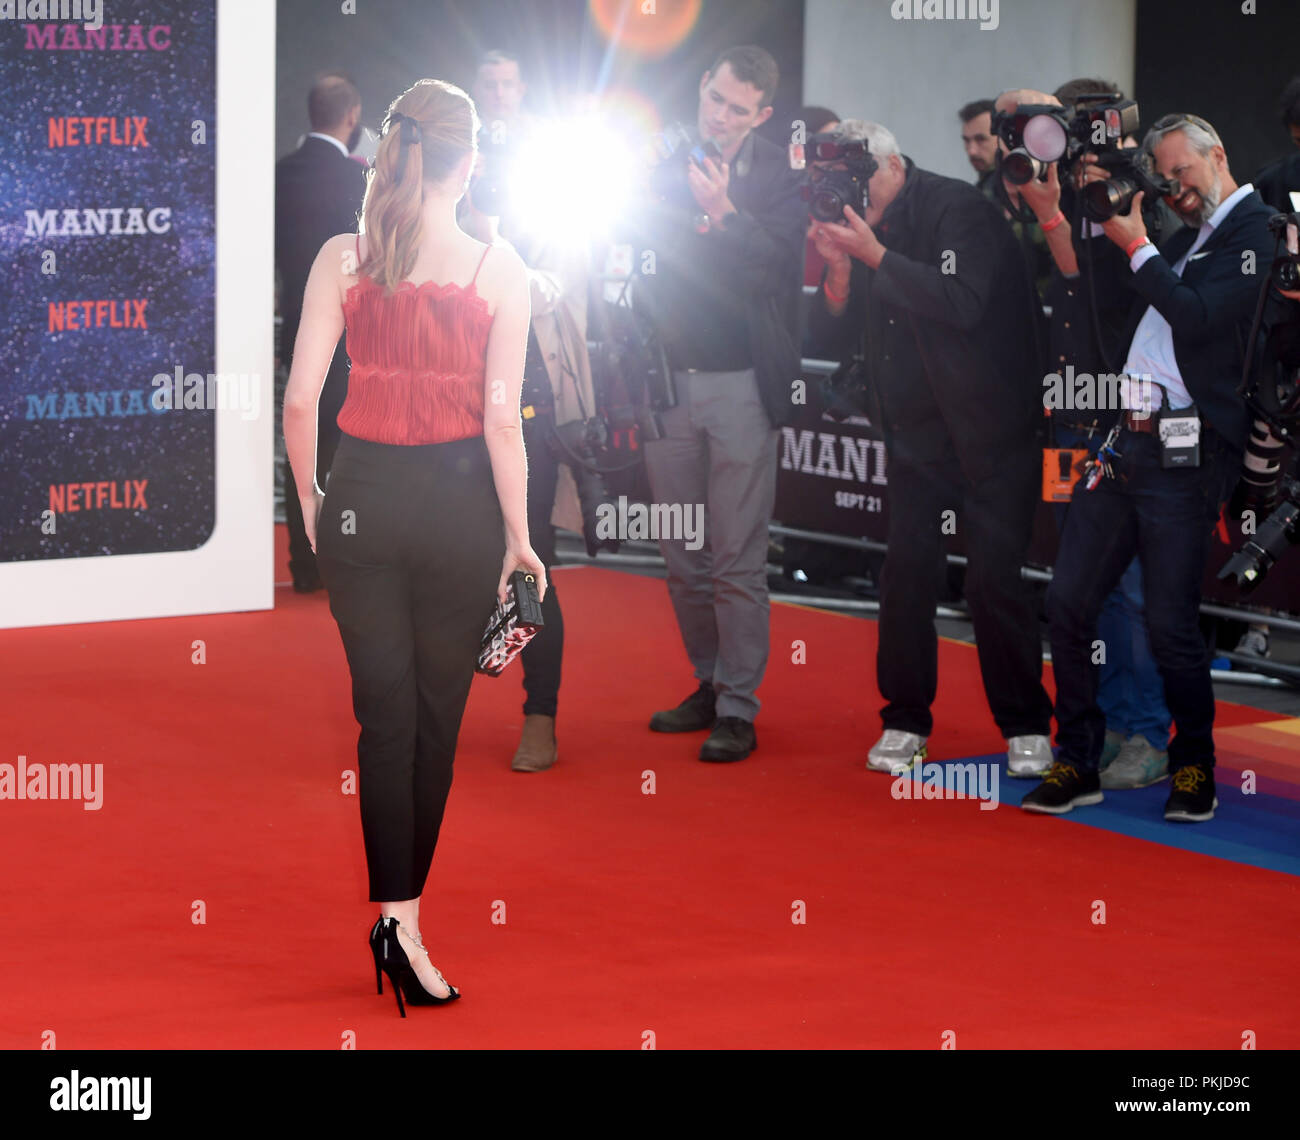 Photo Must Be Credited ©Alpha Press 079965 13/09/2018 Emma Stone at the Maniac World TV Premiere held at the Southbank Centre in London - Stock Image